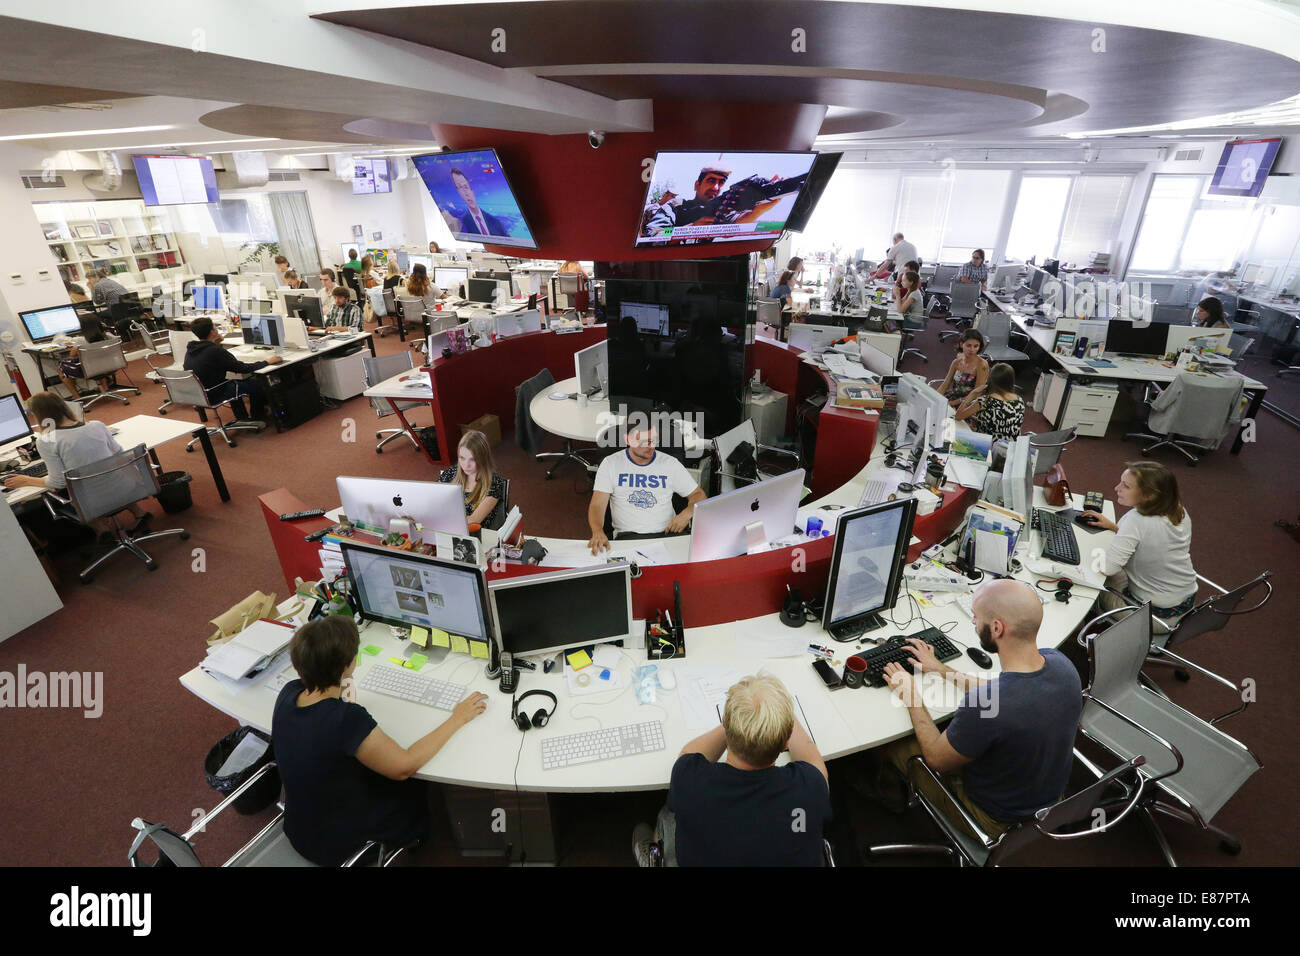 MOSCOW, RUSSIA. OCTOBER 2, 2014. Employees at the offices of the 'Russia Beyond the Headlines' (RBTH) multilingual - Stock Image